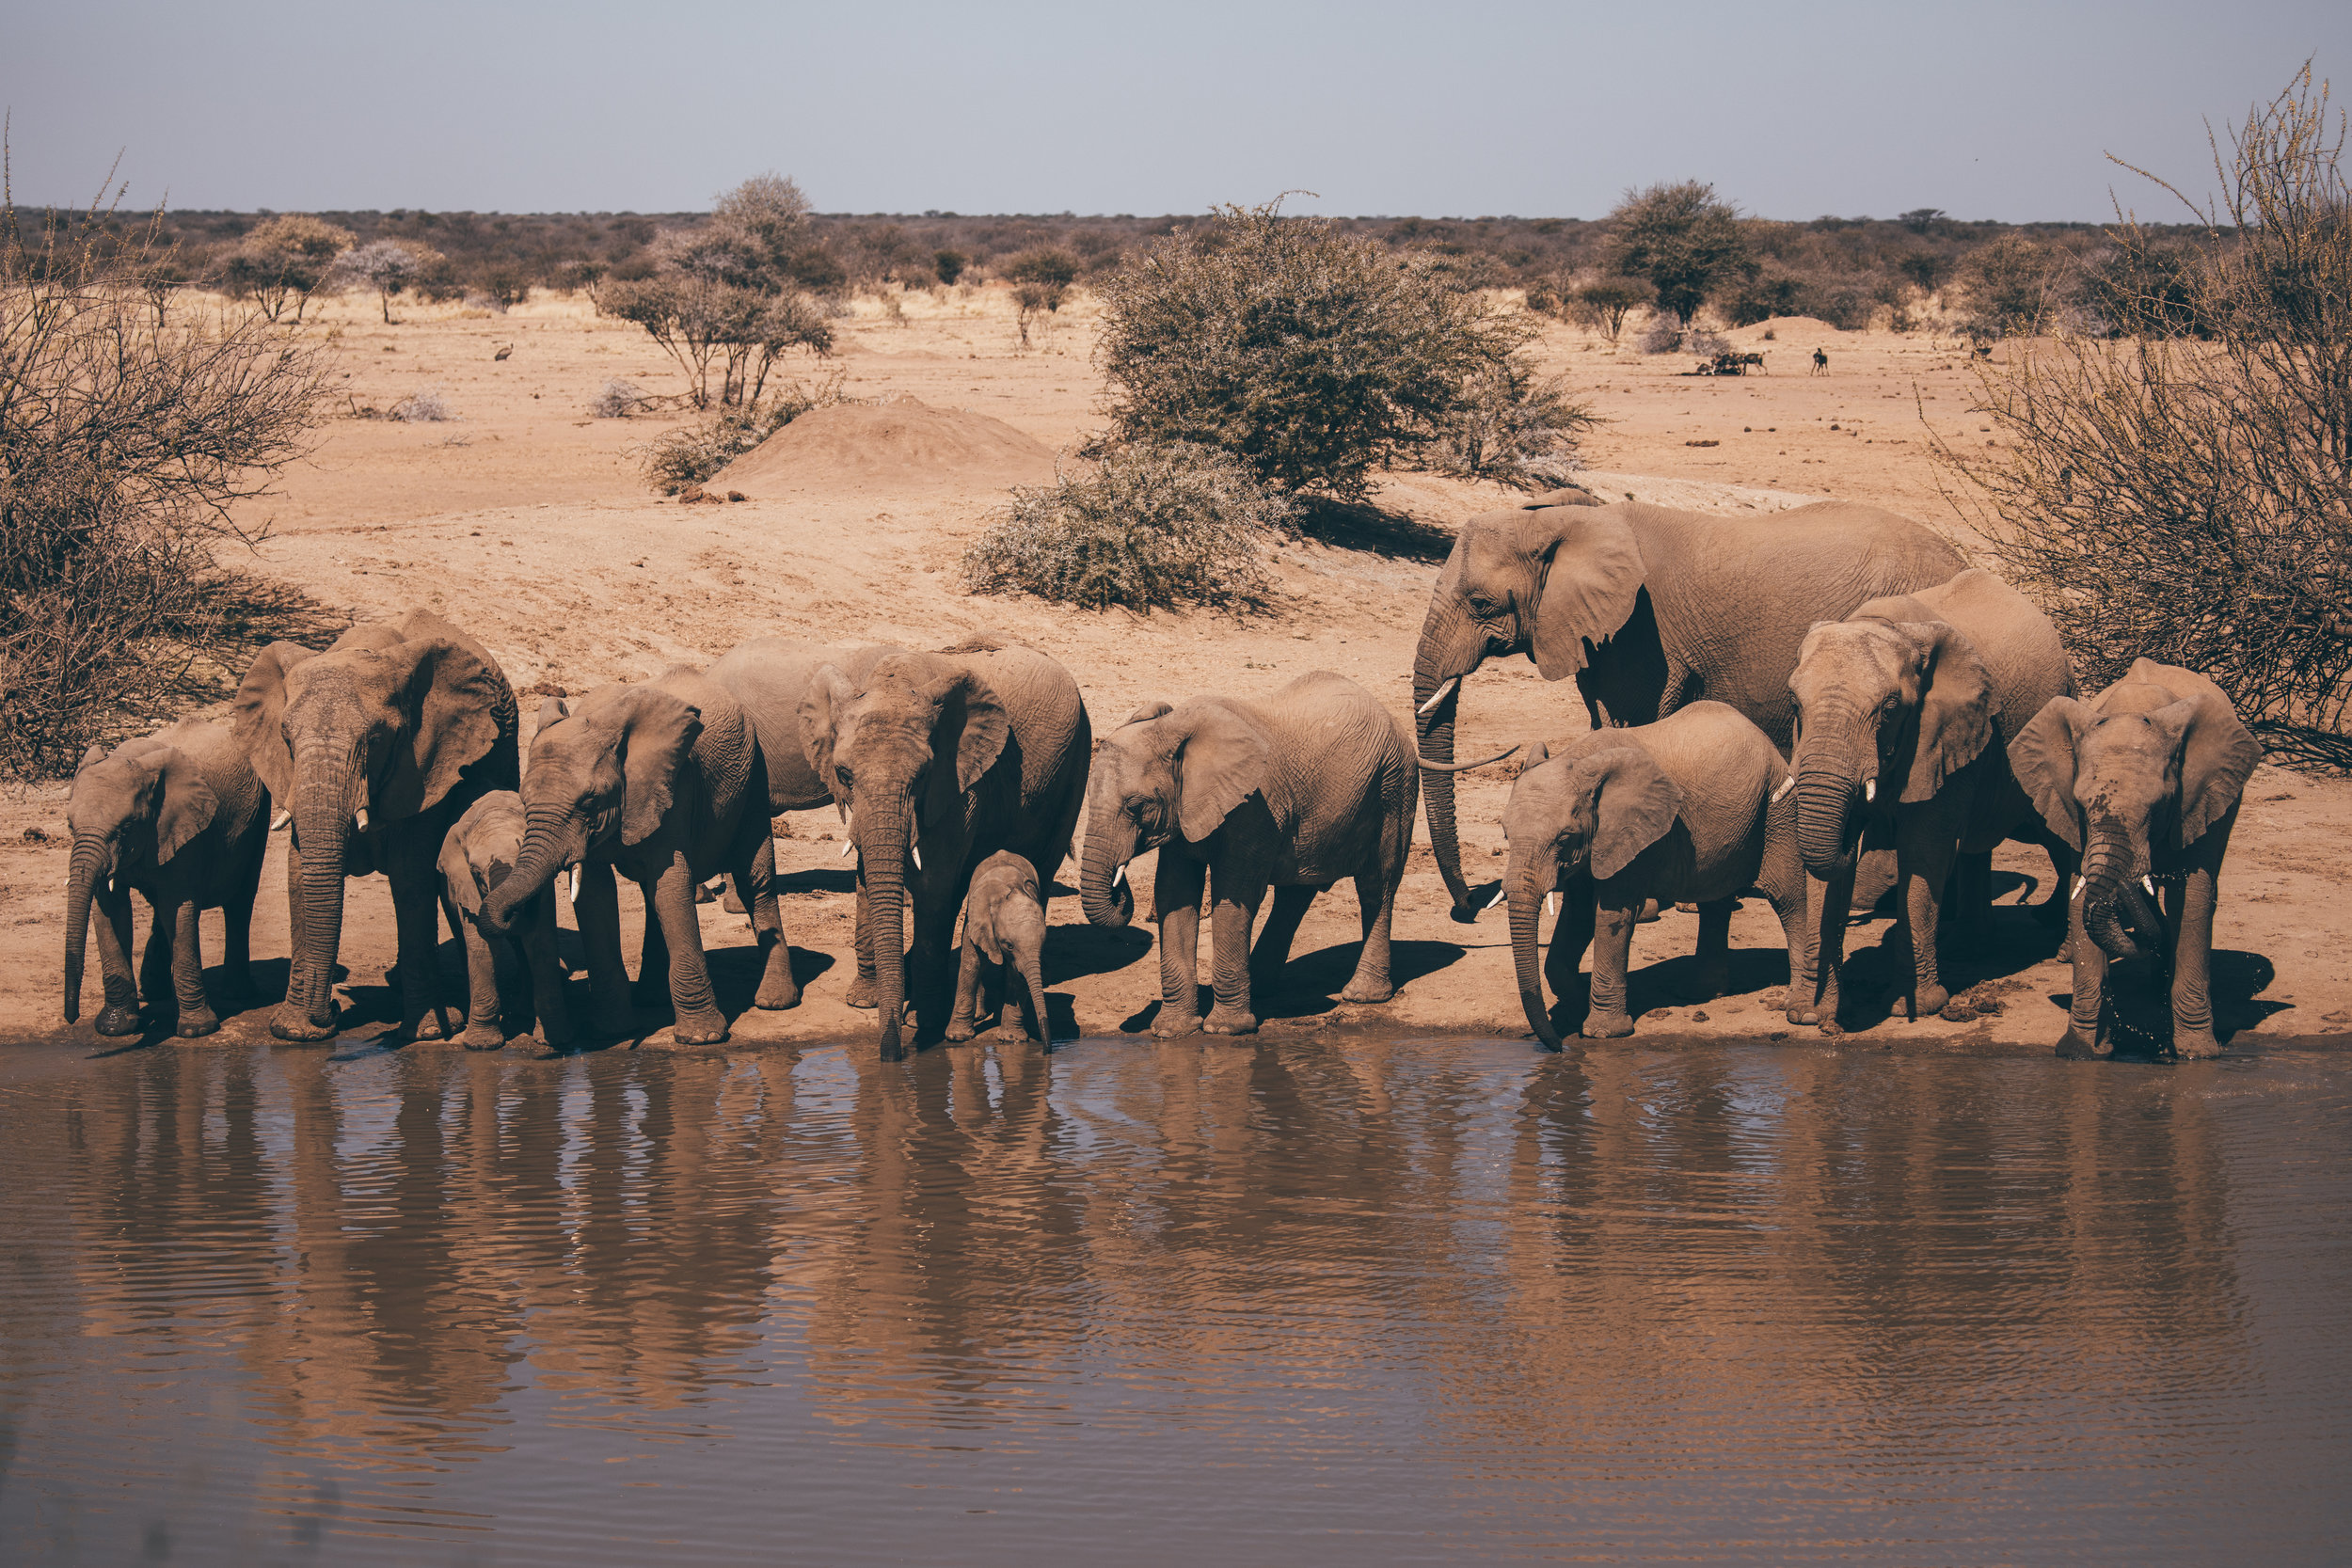 A herd of elephants stops by the watering hole at lunch